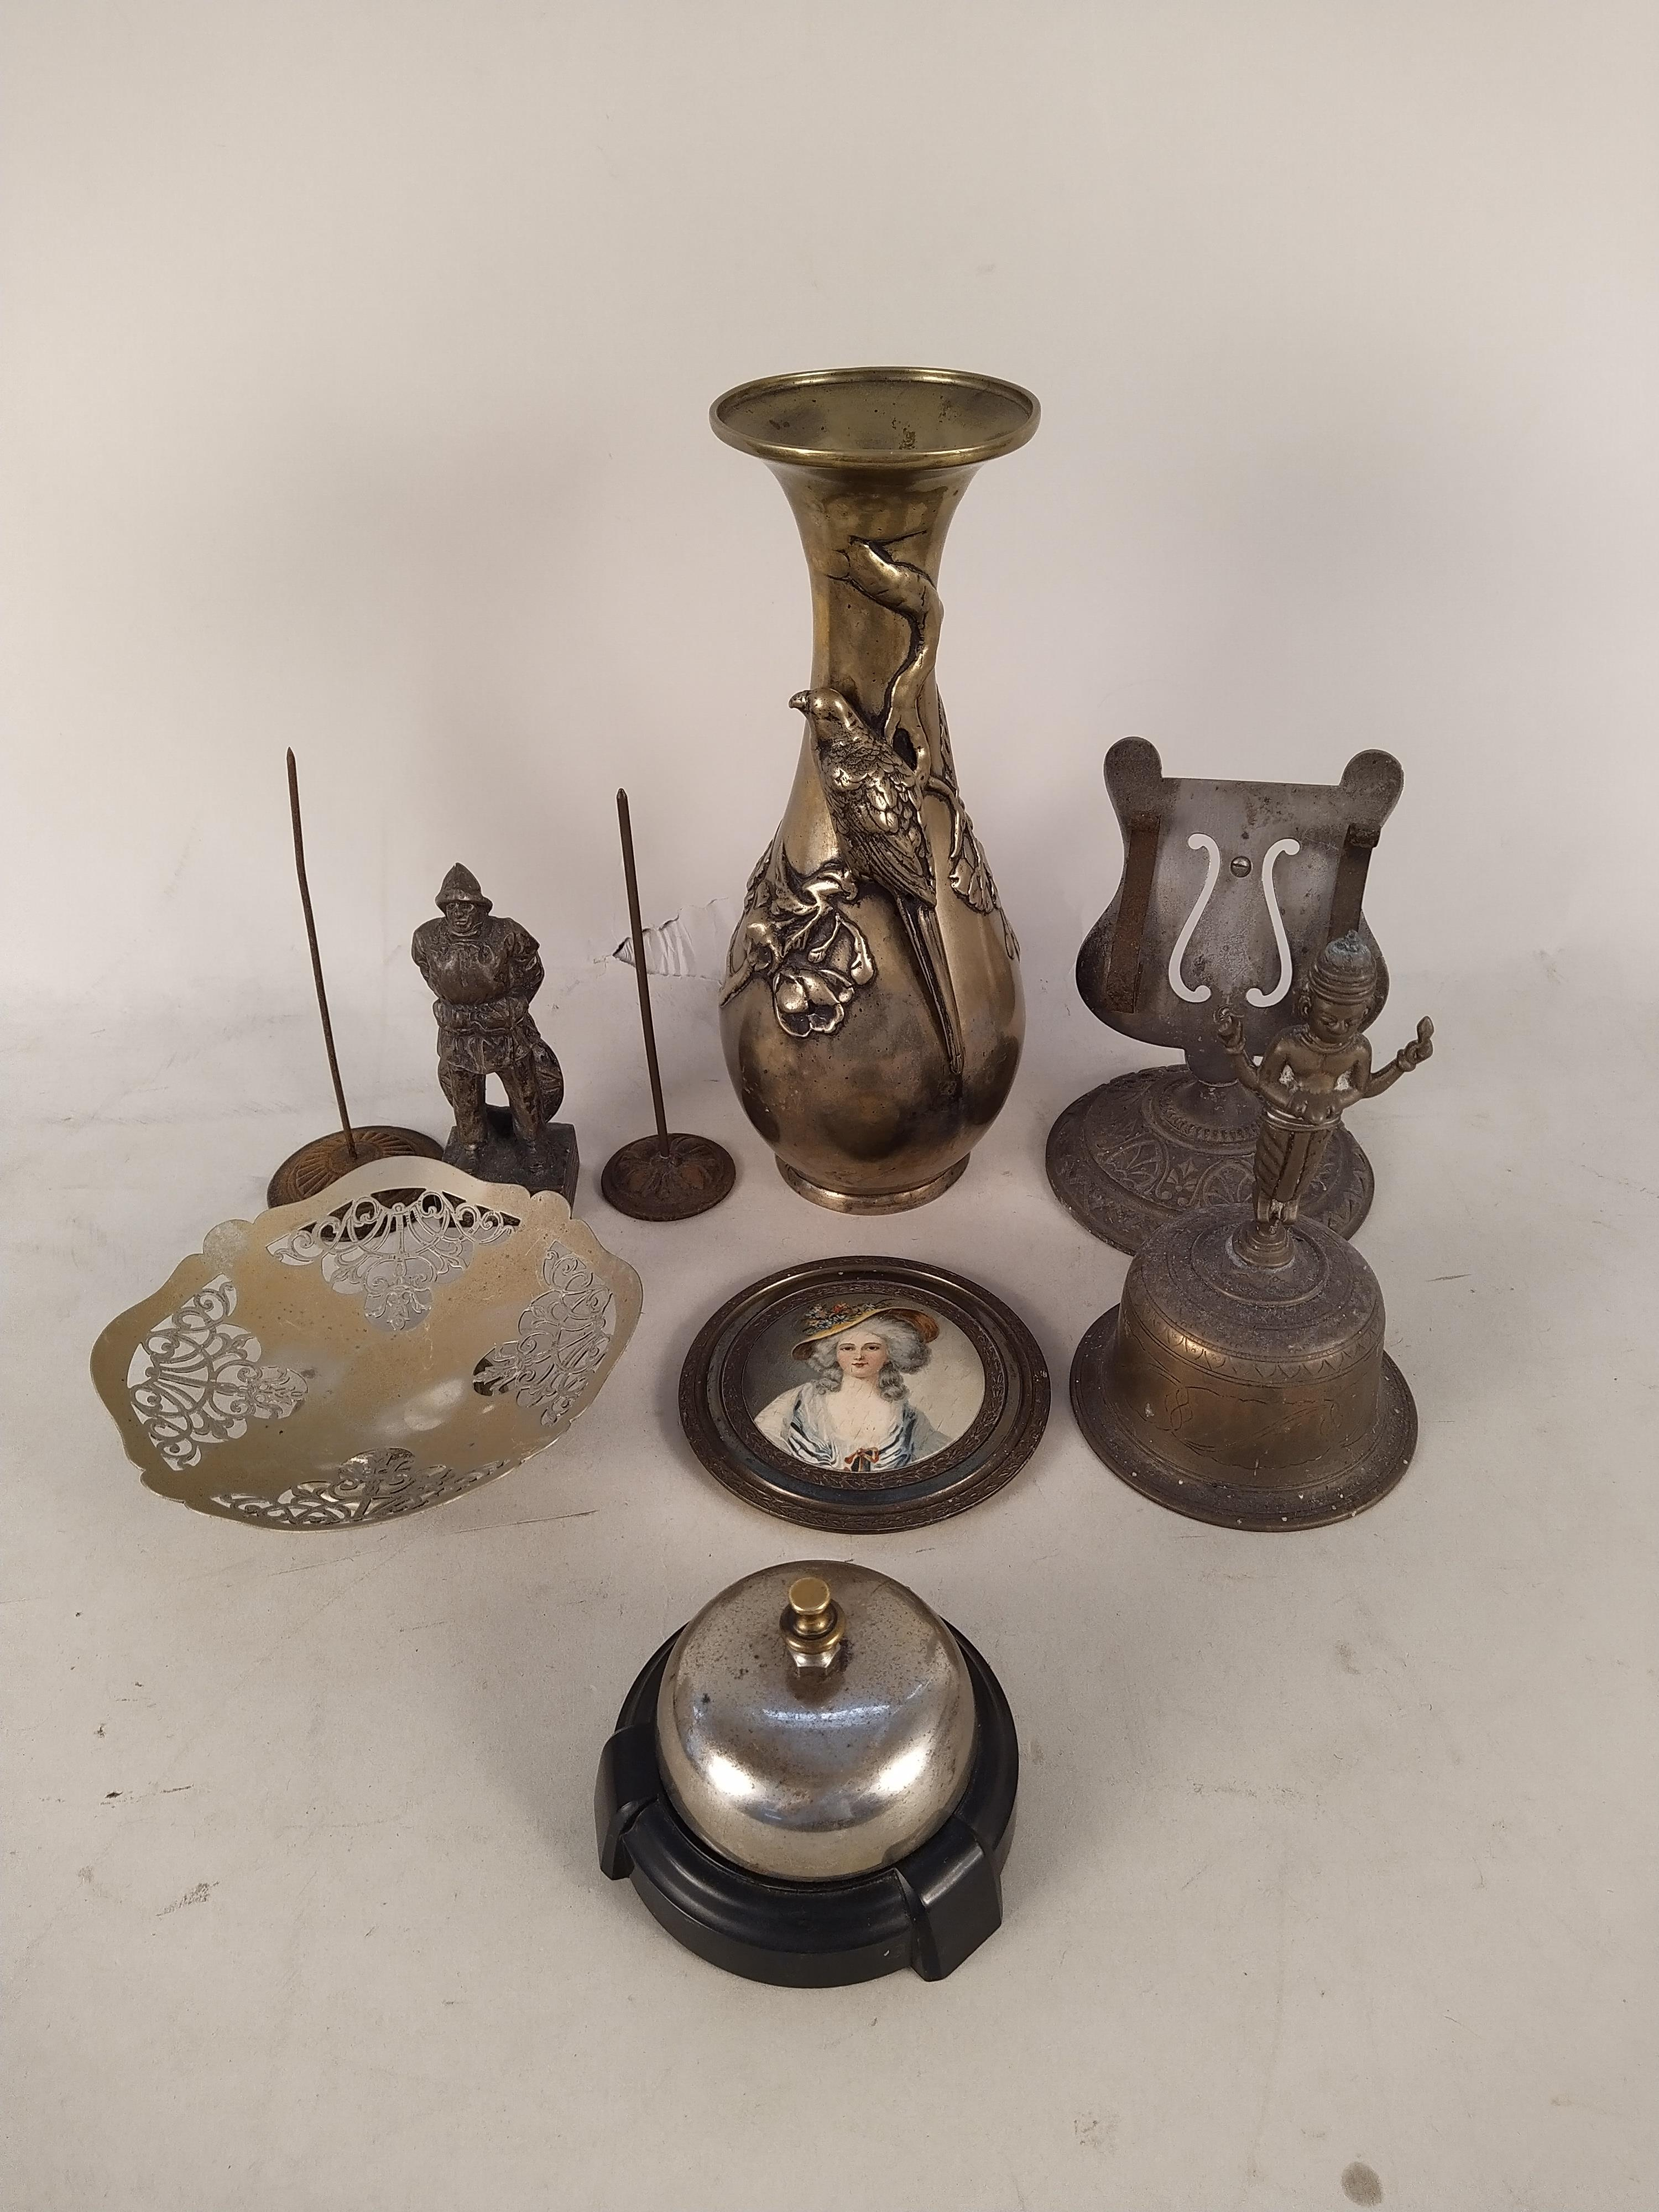 Mixed metalware including an antique paper clip, a heavy brass vase, postal scales (as found), - Image 2 of 3